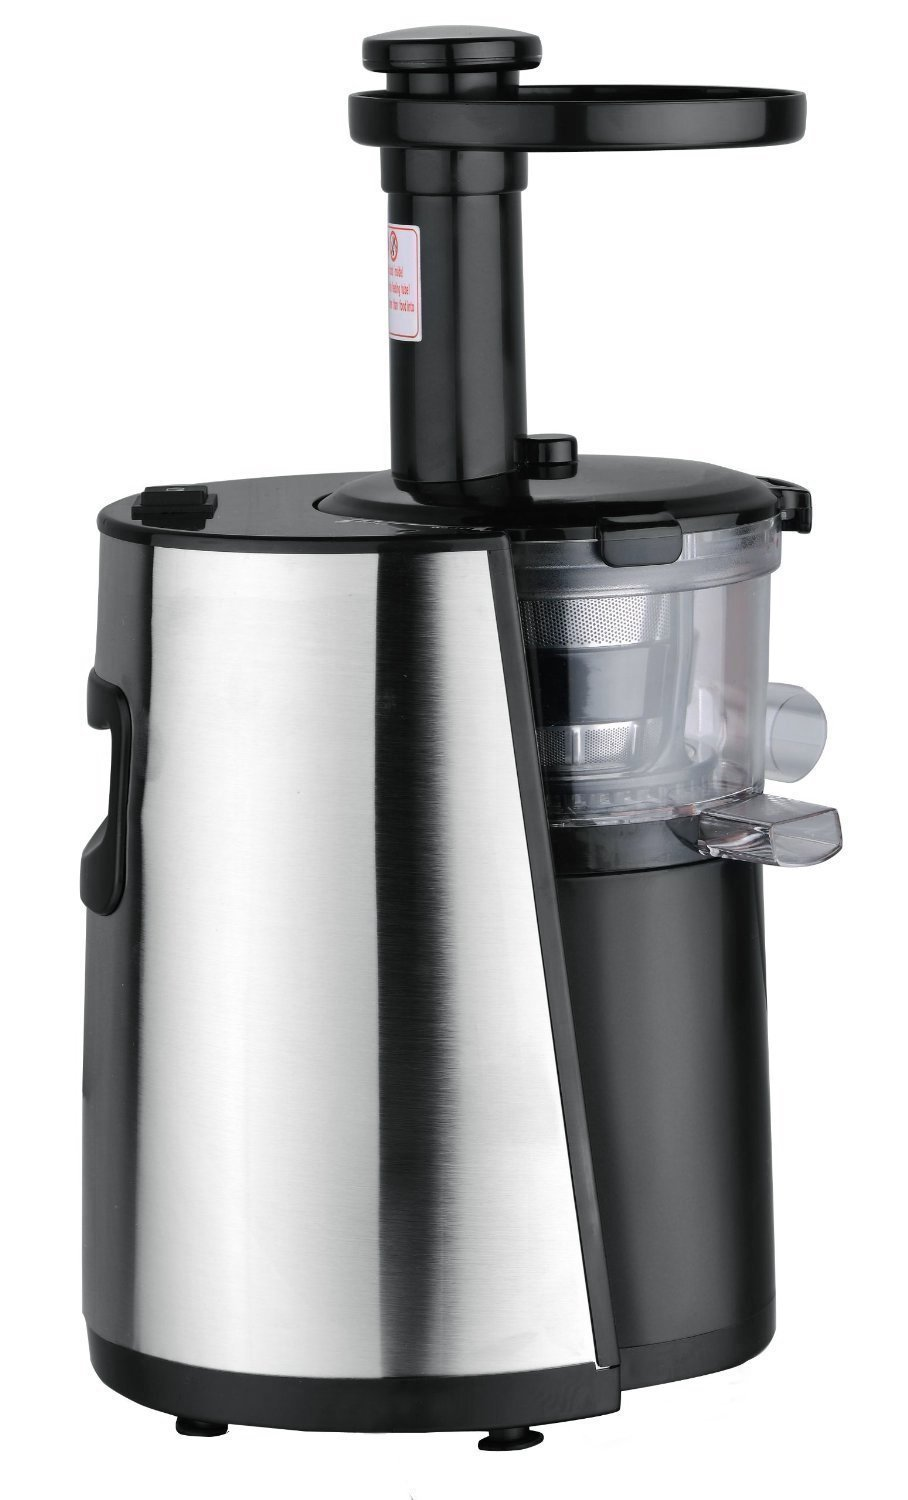 What Is The Best Rated Masticating Juicer : Top 10 best masticating juicers reviews